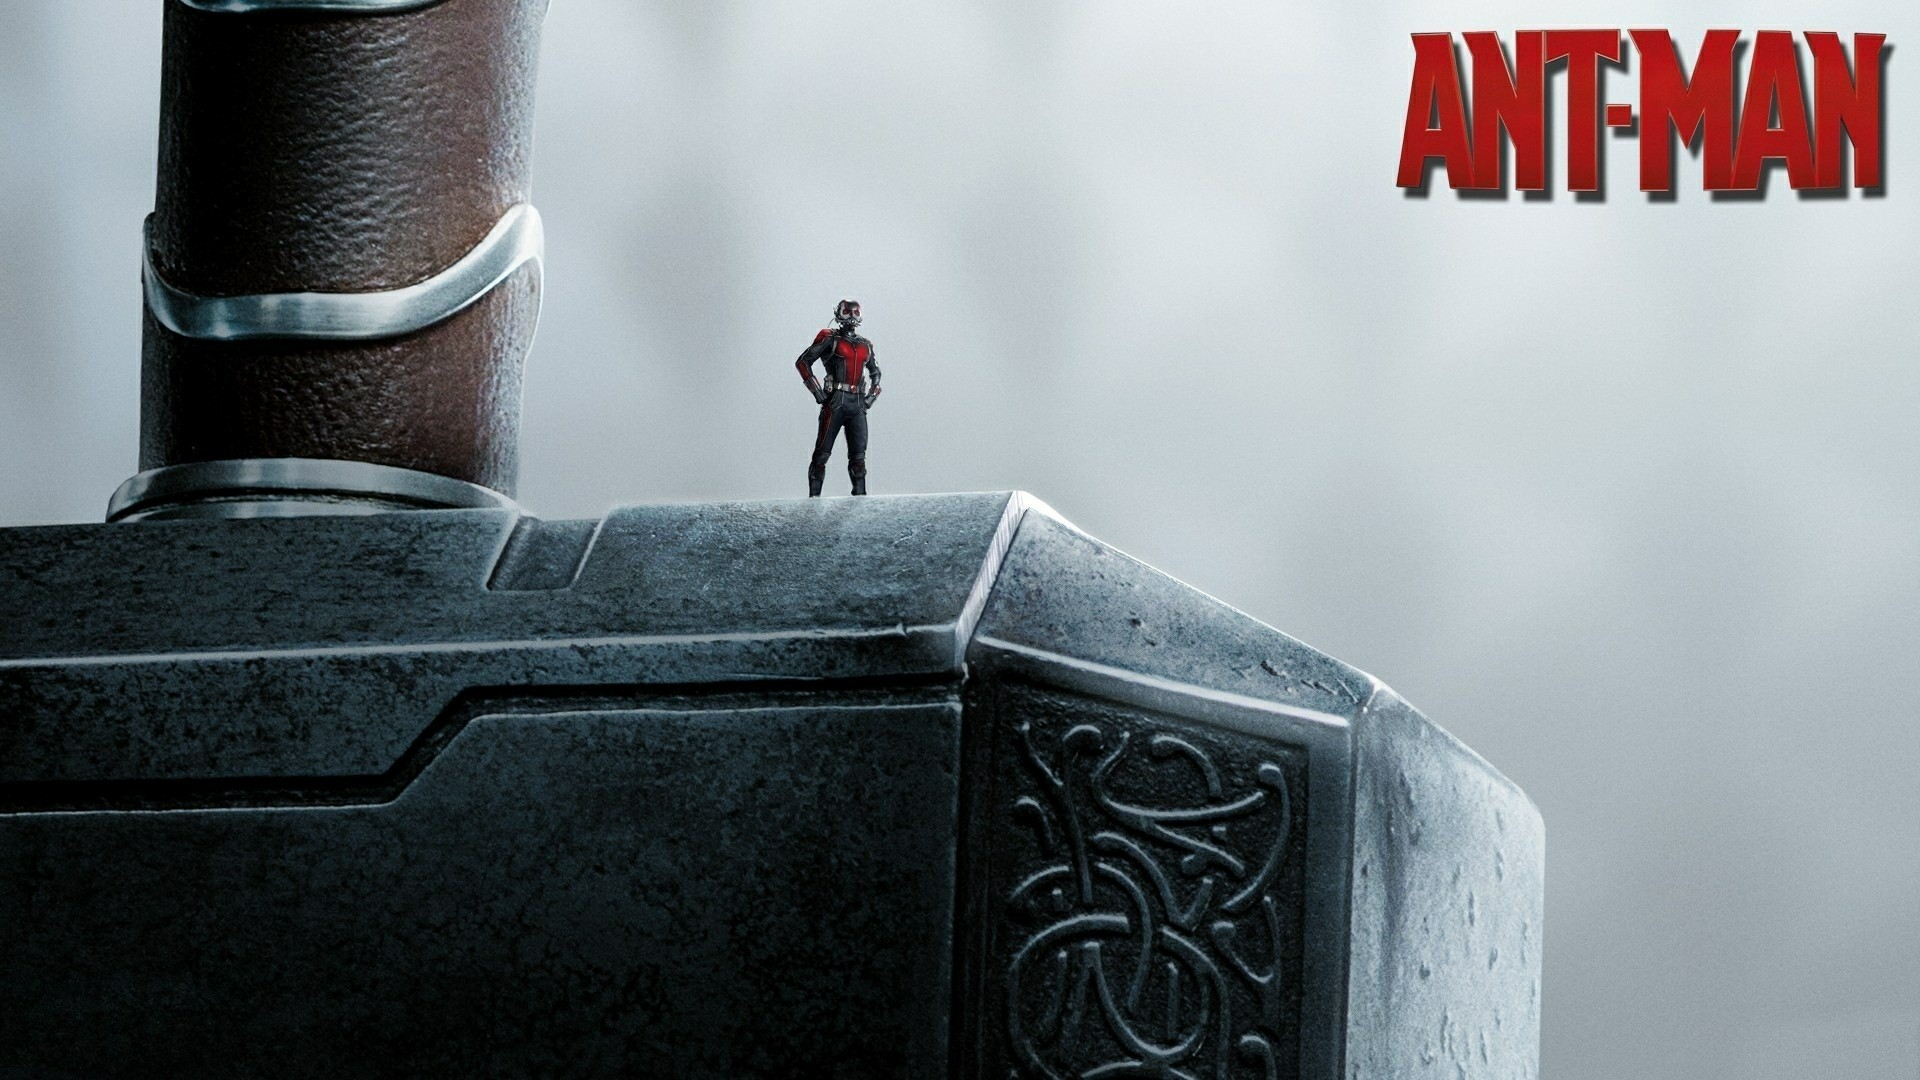 Ant man thor hammer wallpapers. Â«